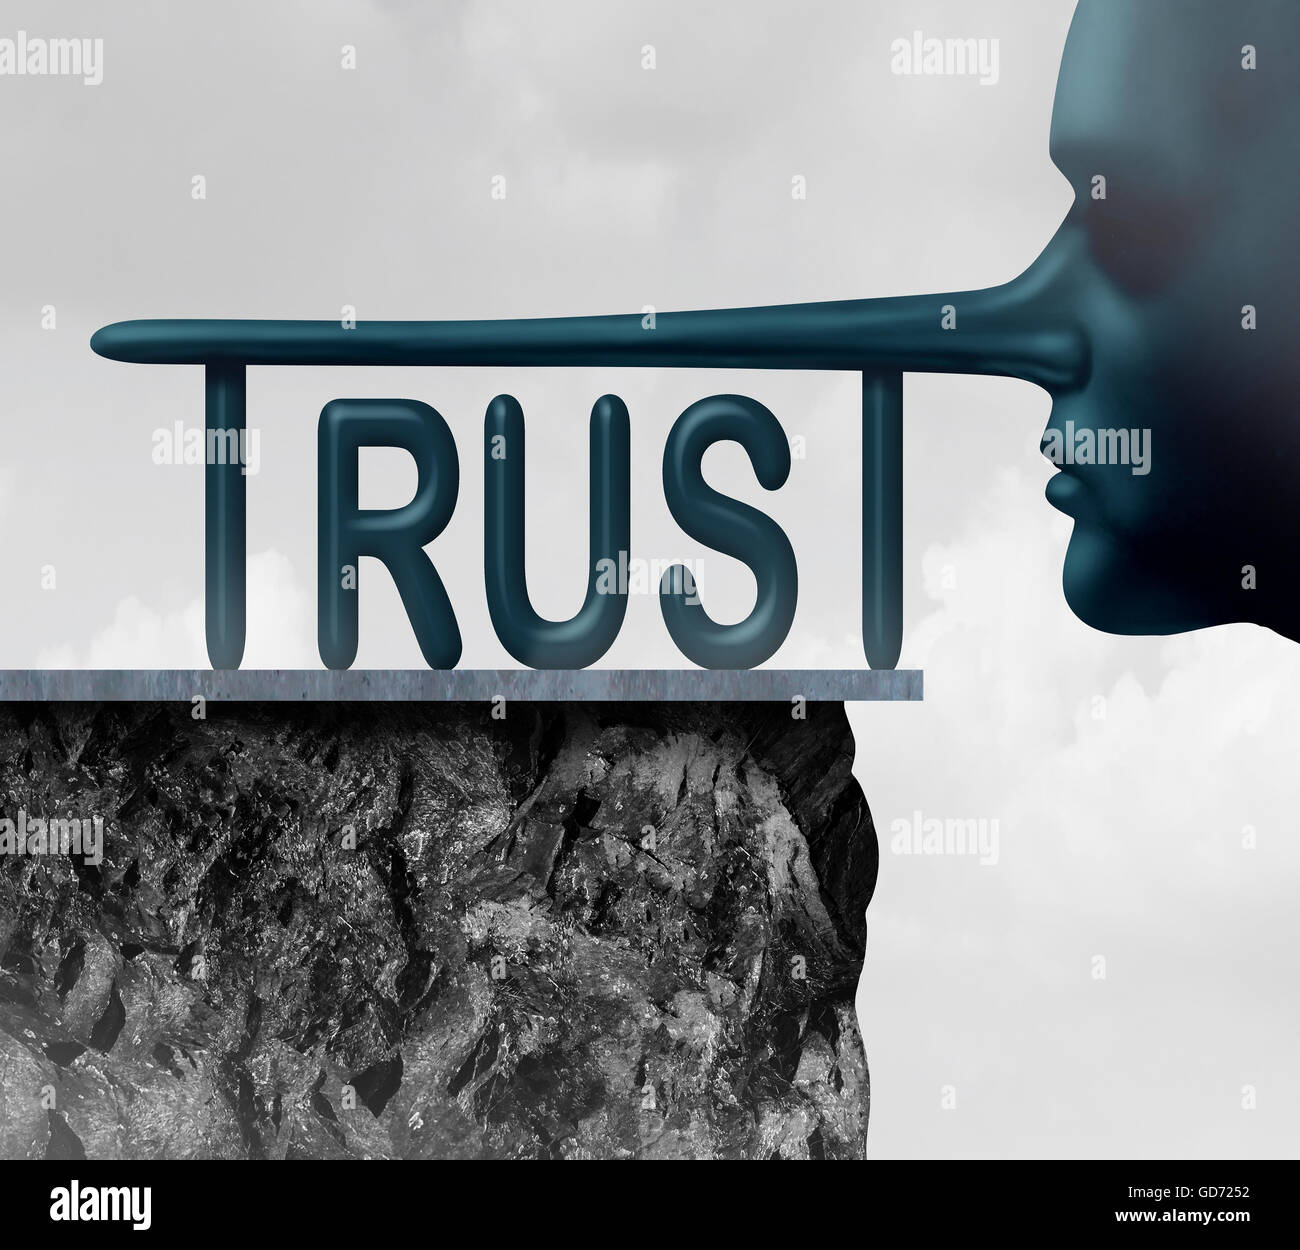 Liar concept stock photos liar concept stock images alamy concept of trust and honesty problem symbol as text with a long liar or lying person biocorpaavc Choice Image